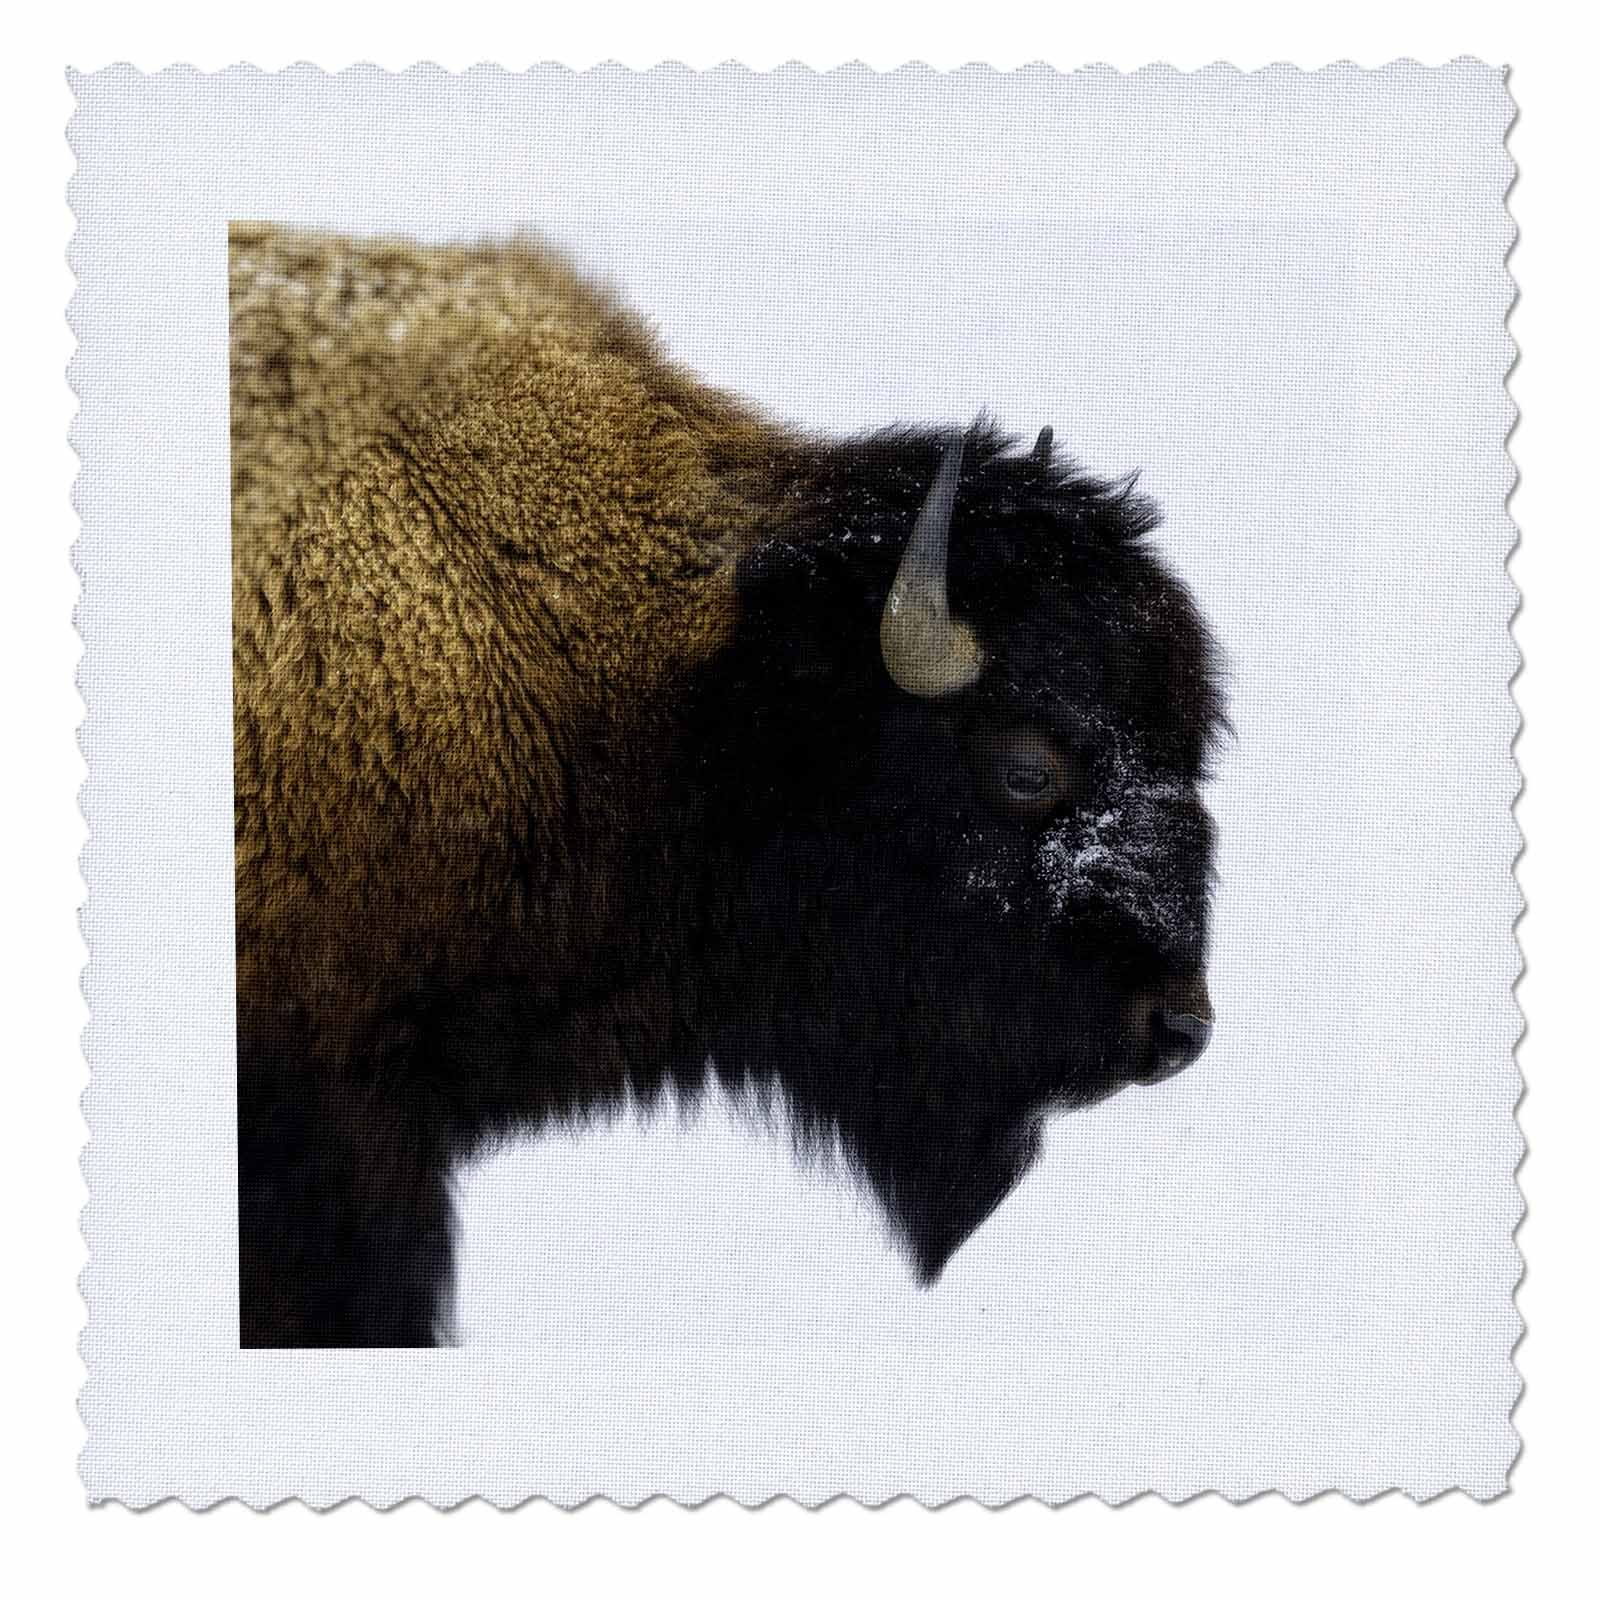 3dRose Mike Swindle Photography - Animals - Bison Portrait - 18x18 inch quilt square (qs_280204_7)